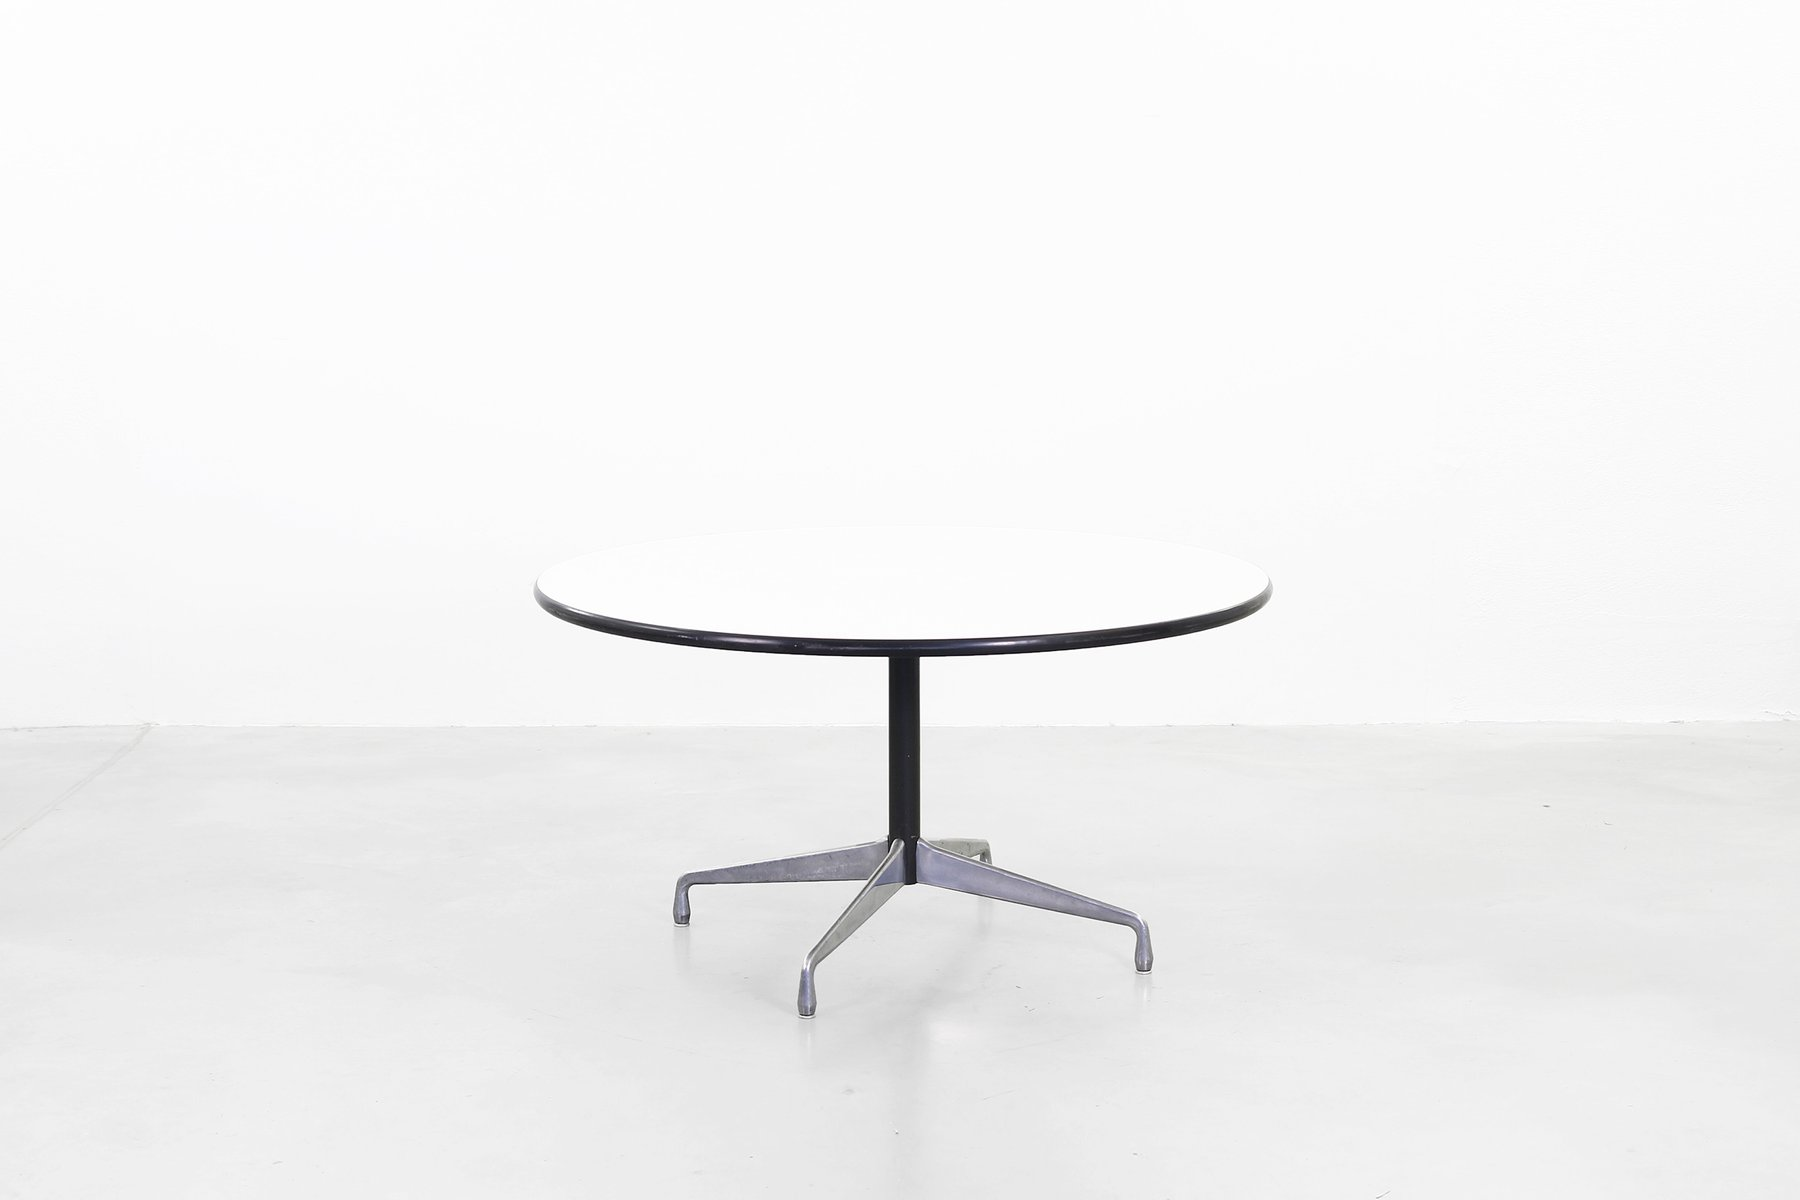 Vintage dining table by charles ray eames for herman - Eames table herman miller ...